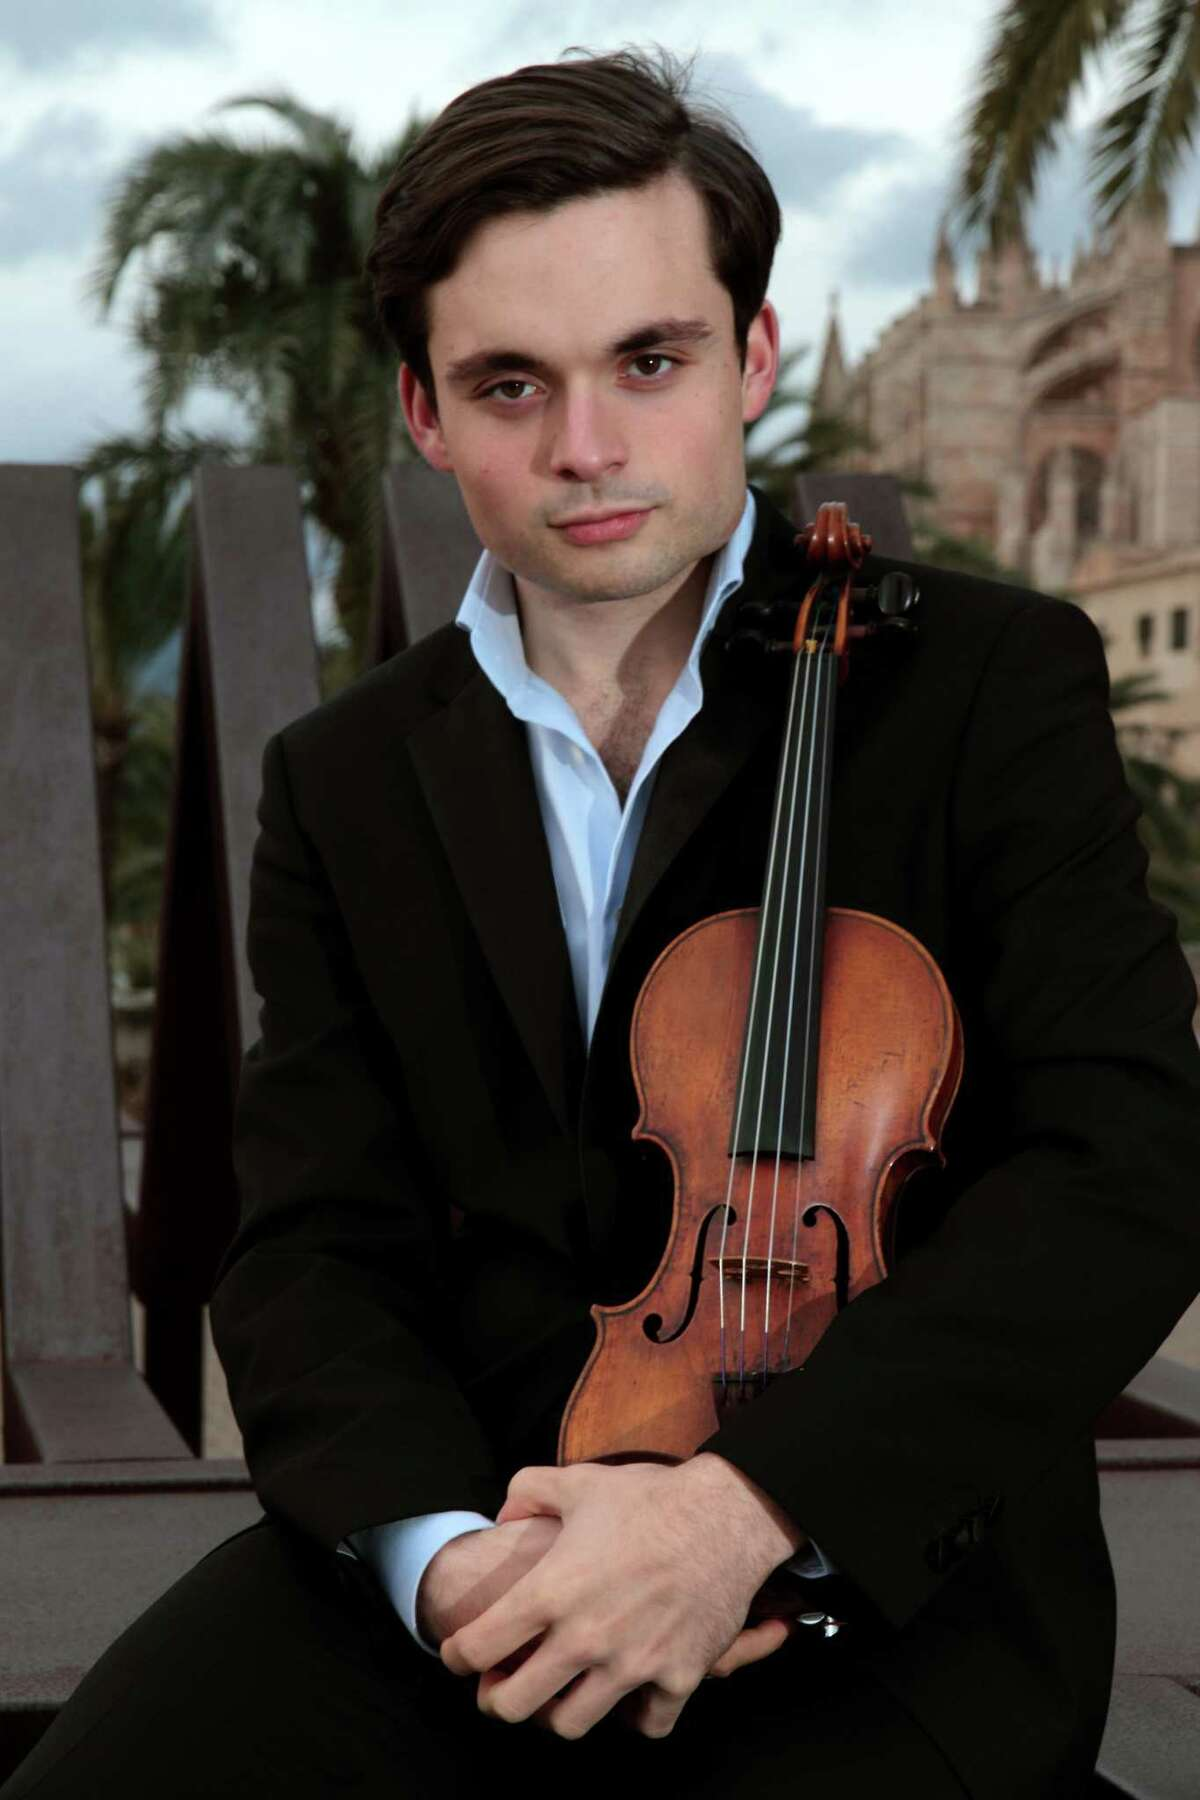 Violinist Francisco Fullana (pictured) will join composer/bandoneon player J.P. Jofre and conductor José Luis Gomez for